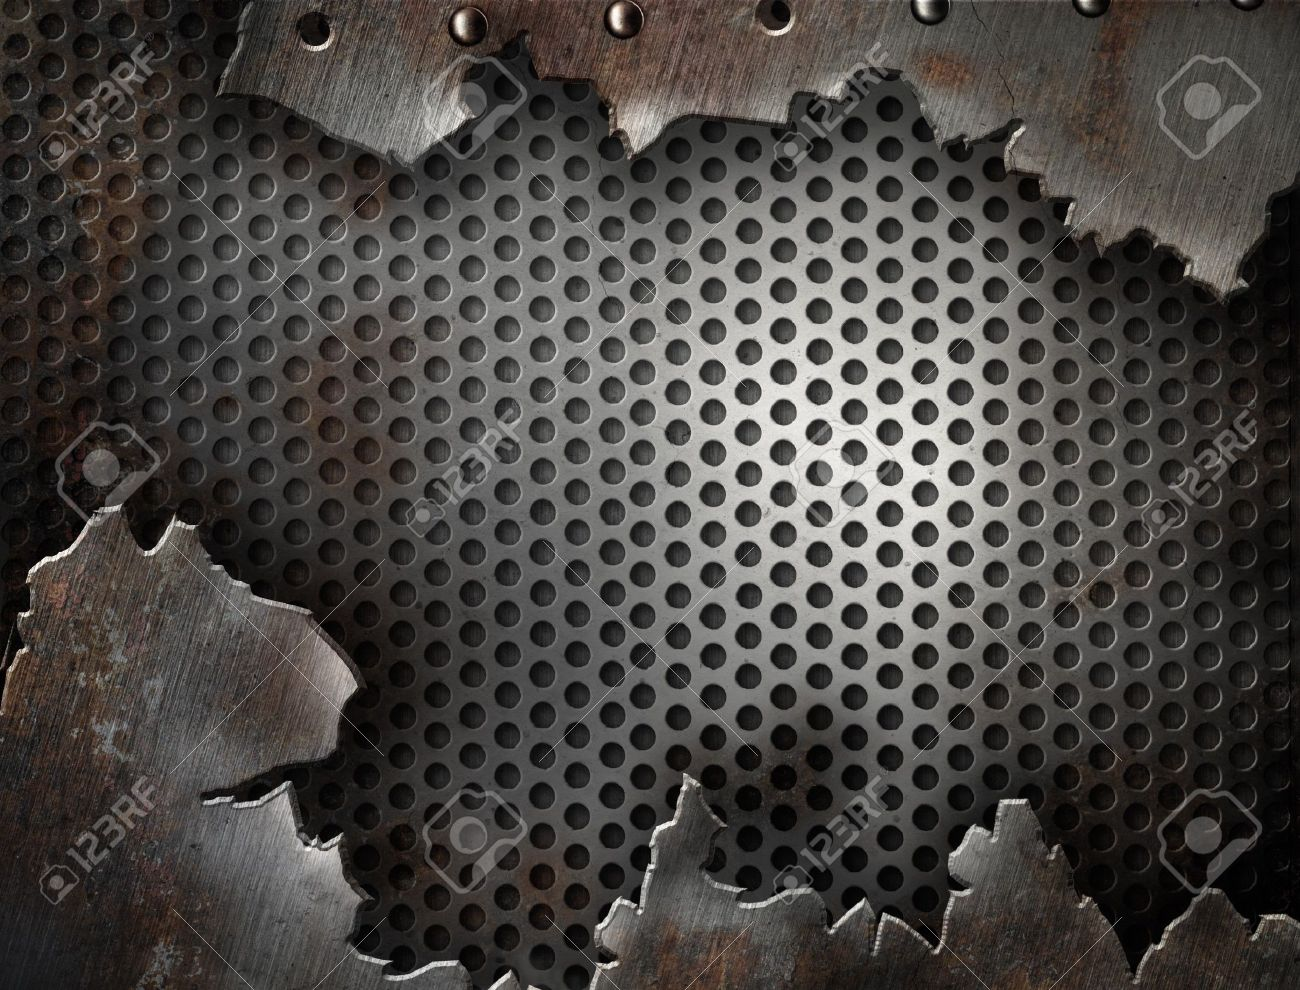 crack metal grunge background with rivets Stock Photo - 8056580